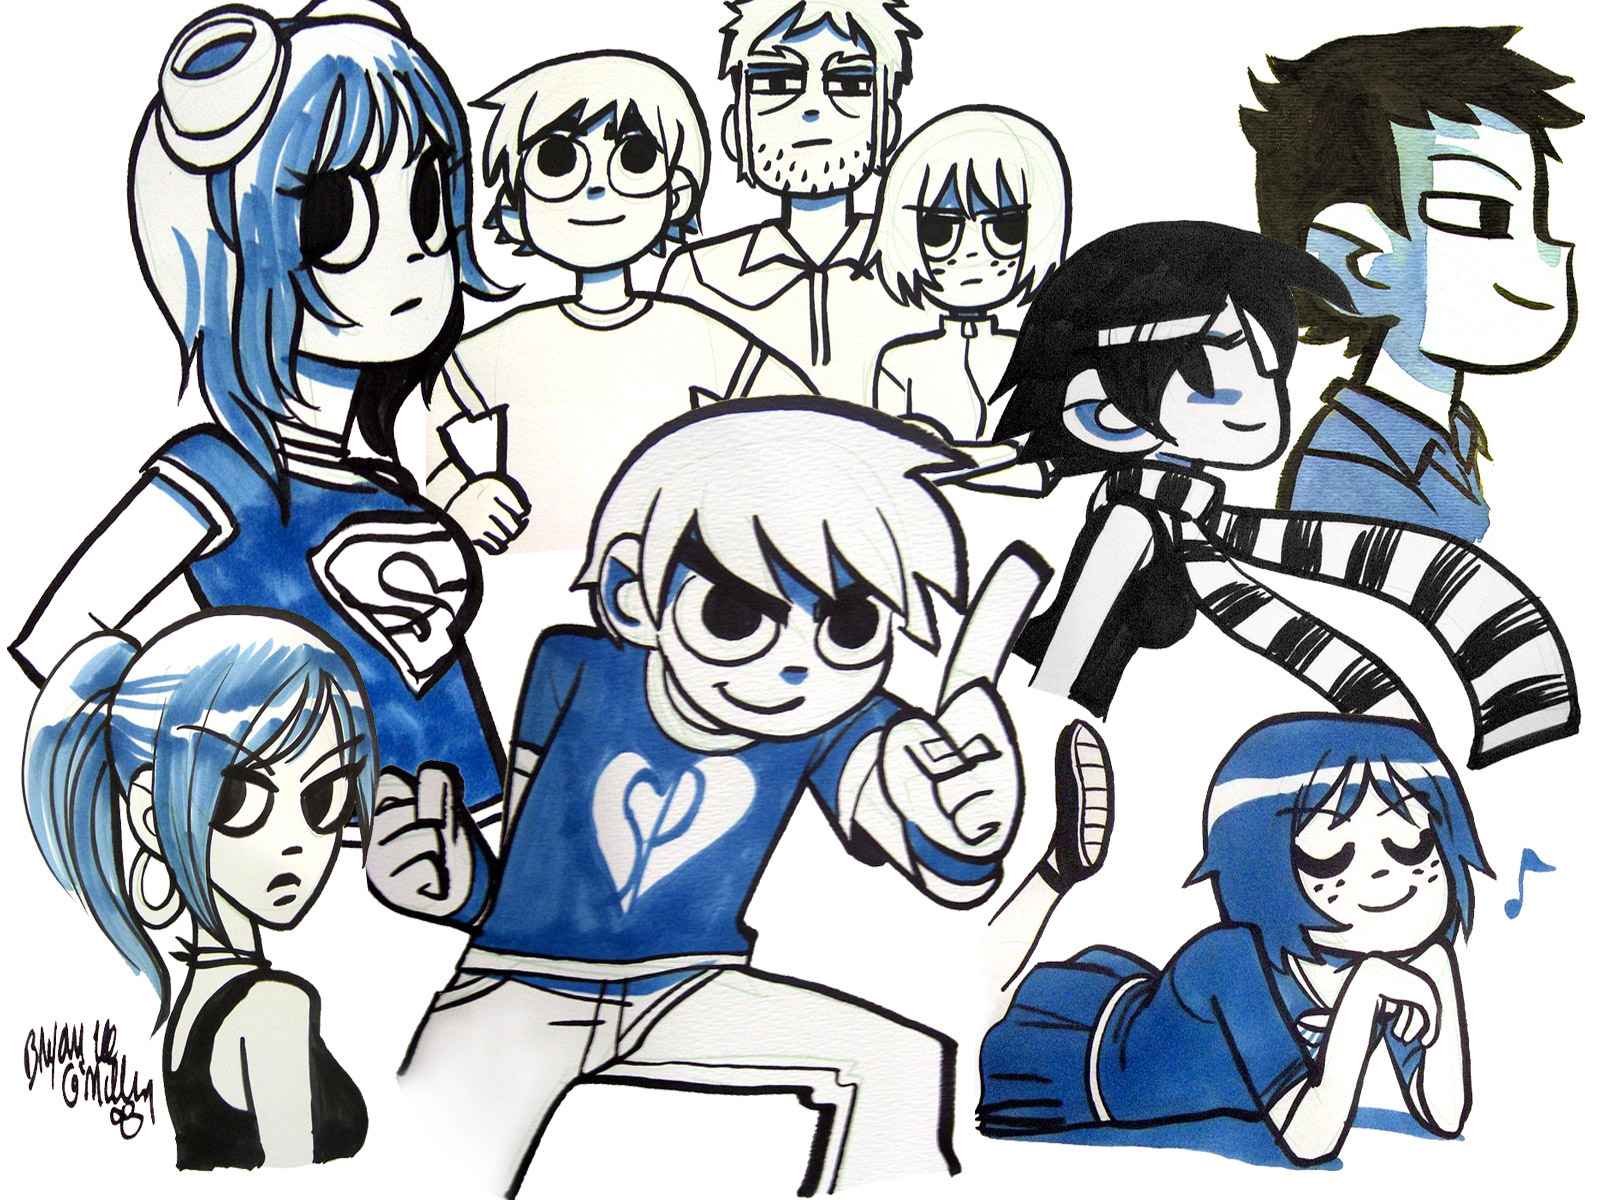 Podcast 001. «Scott Pilgrim» y otras obra de Brian Lee O´Malley